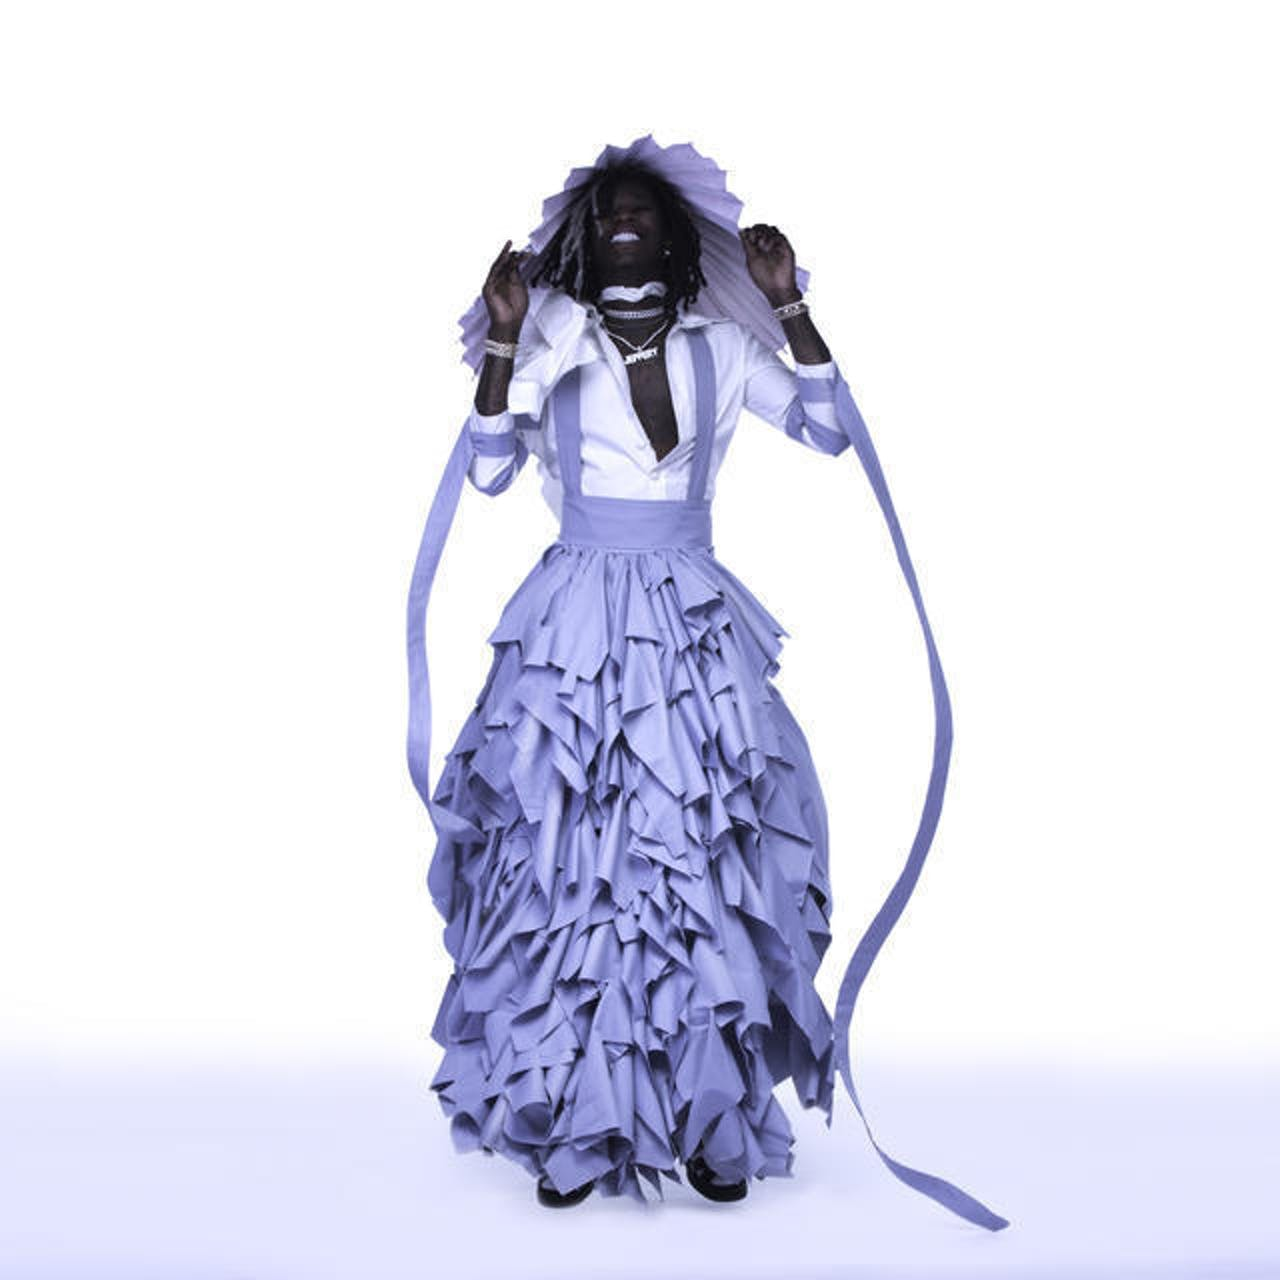 young thug jeffrey album cover dress